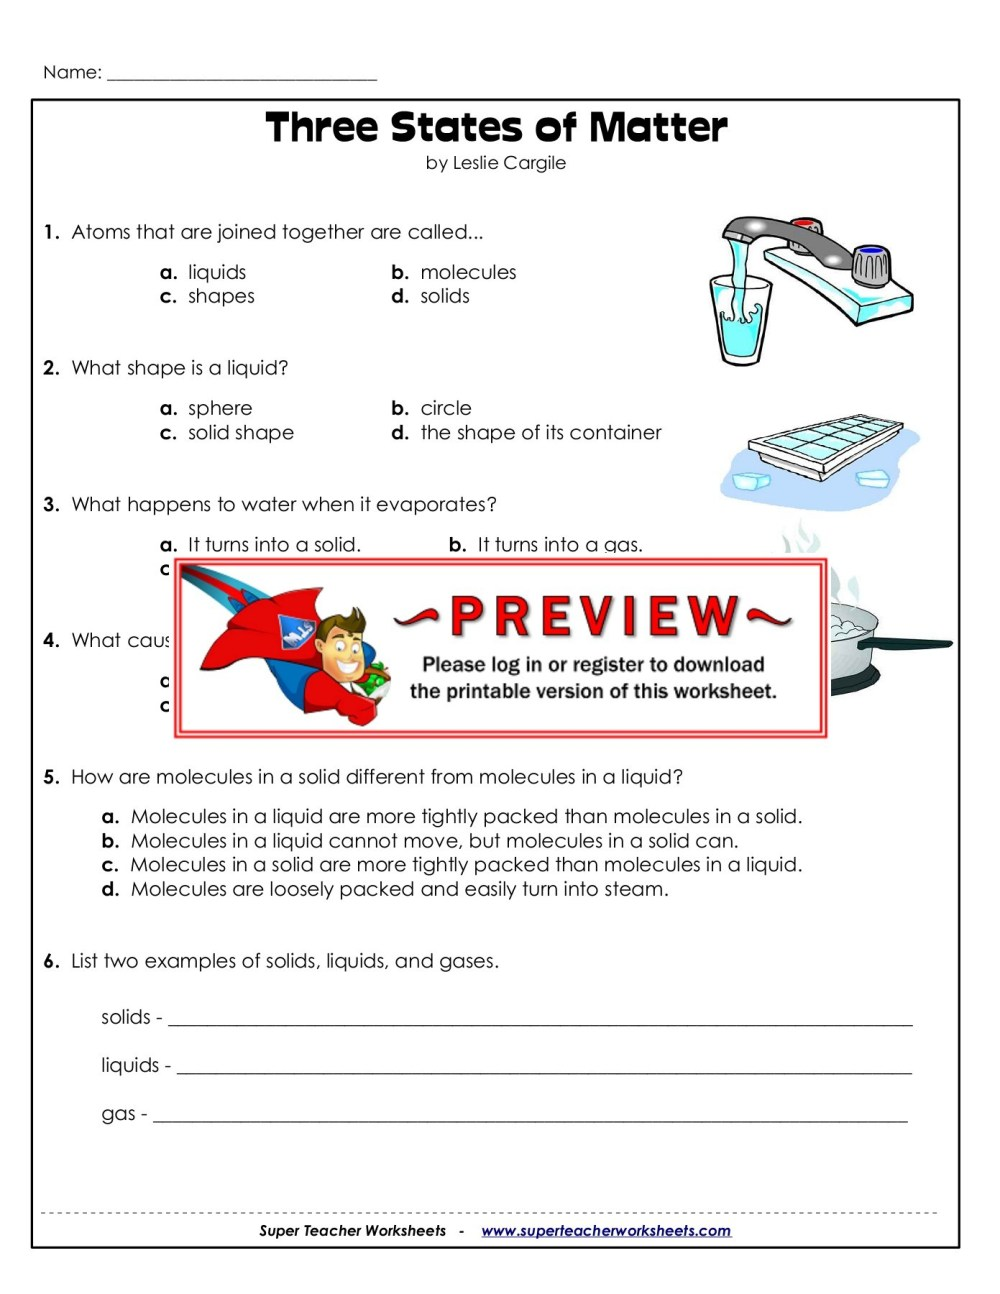 medium resolution of Name: Three States of Matter - Super Teacher Worksheets Pages 1 - 3 - Flip  PDF Download   FlipHTML5